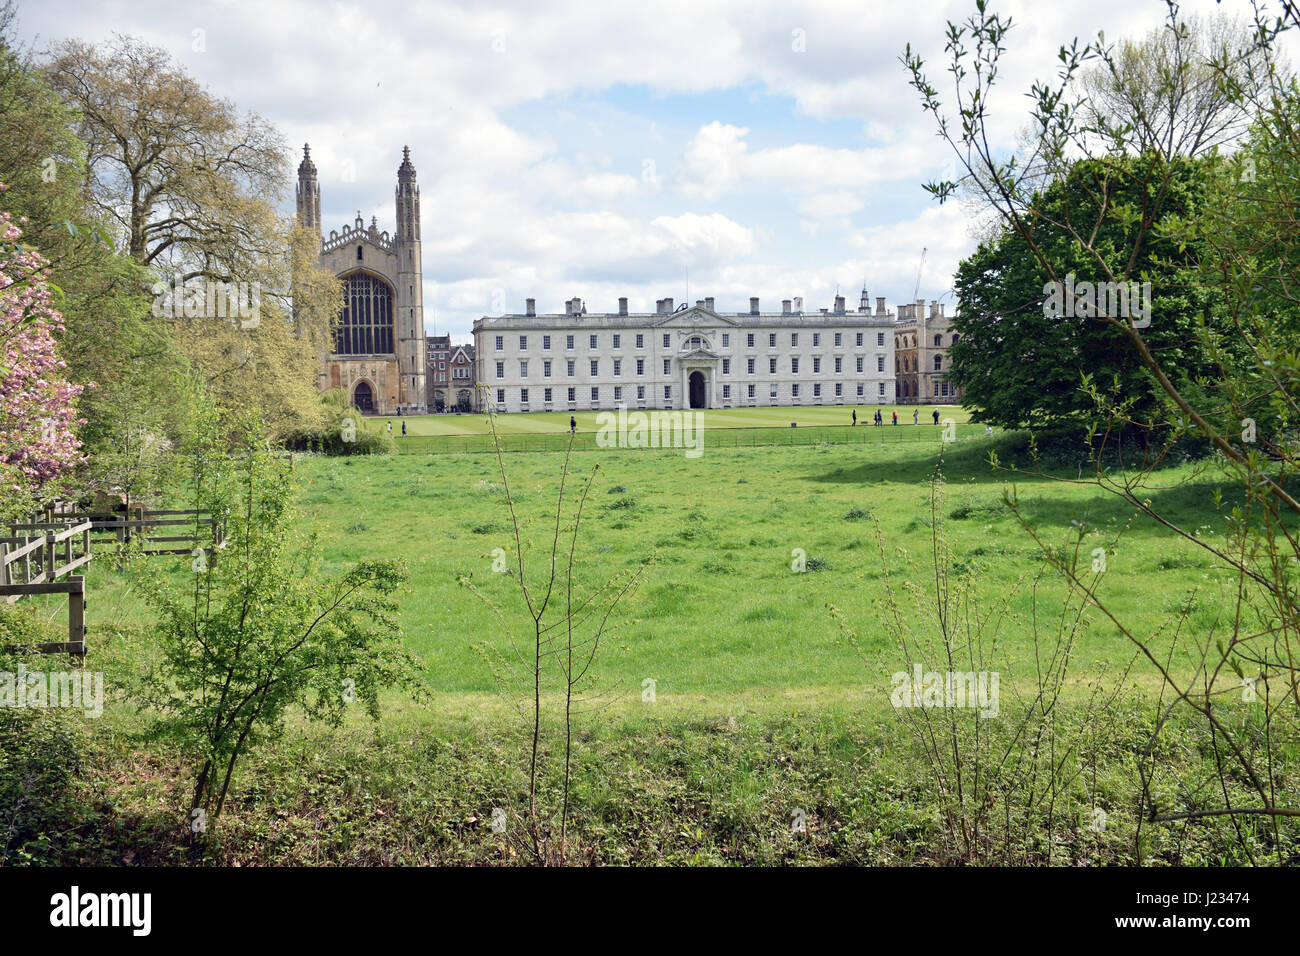 Kings College, University of Cambridge - Stock Image